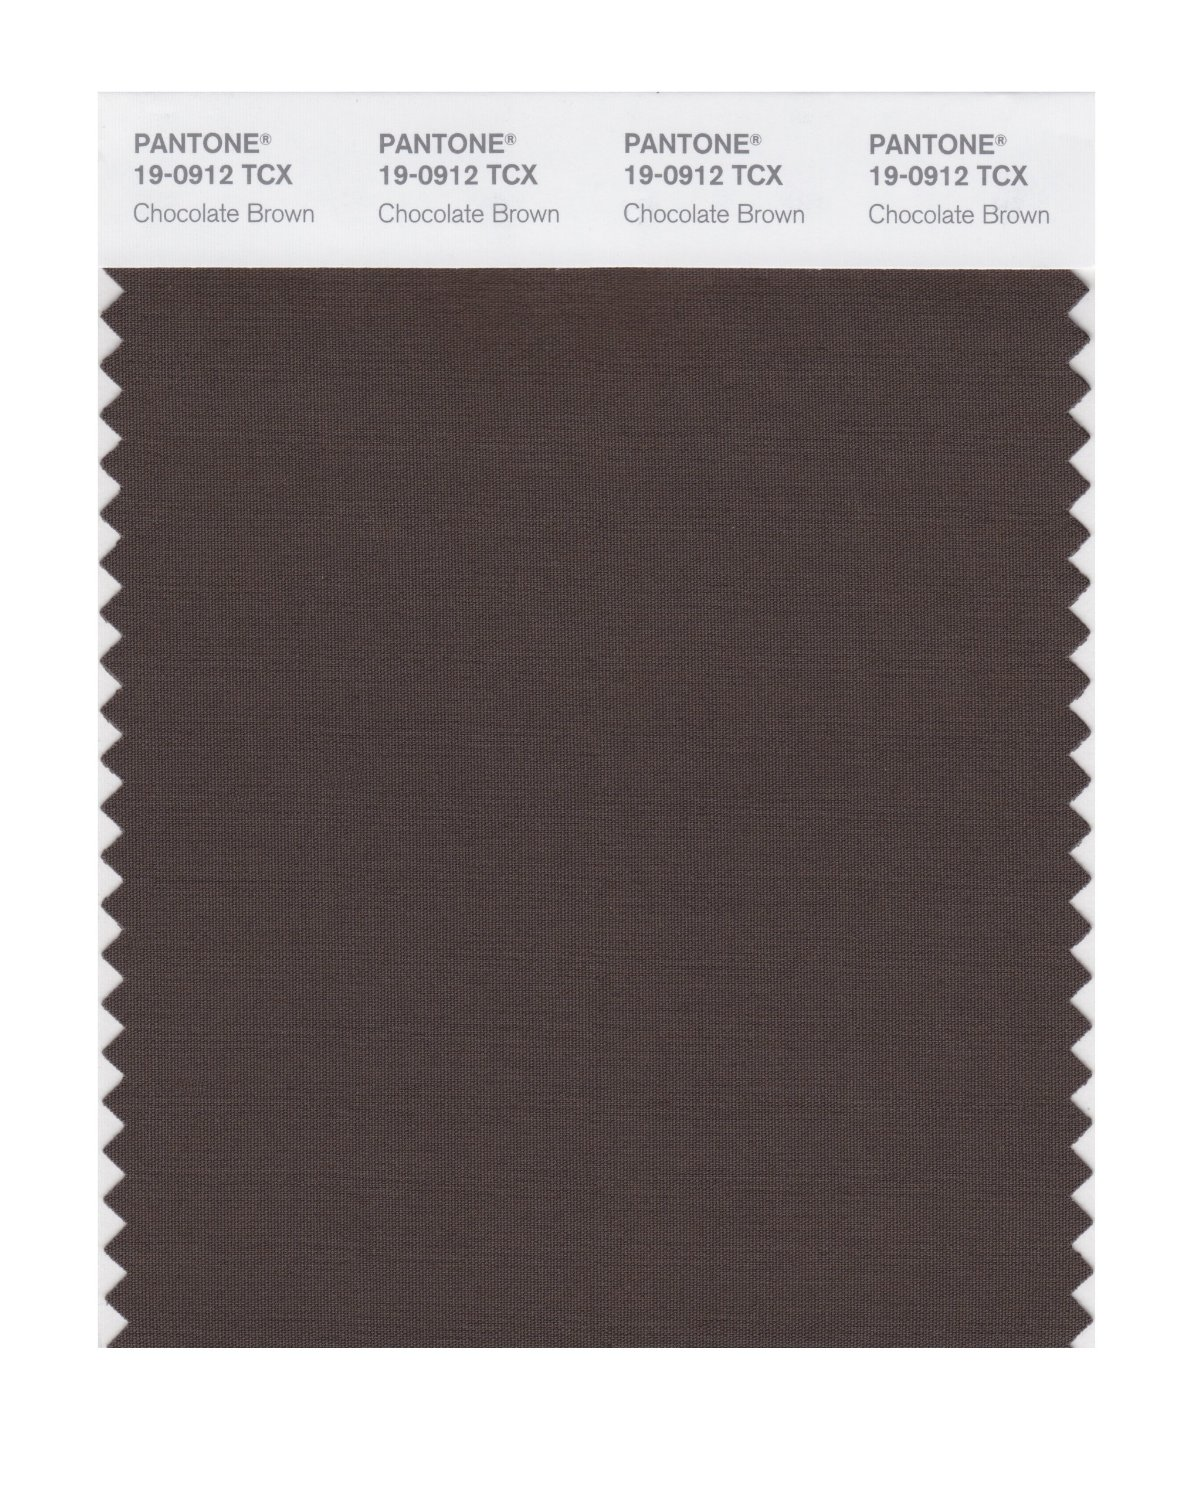 Pantone Smart Swatch 19-0912 Chocolate Brown